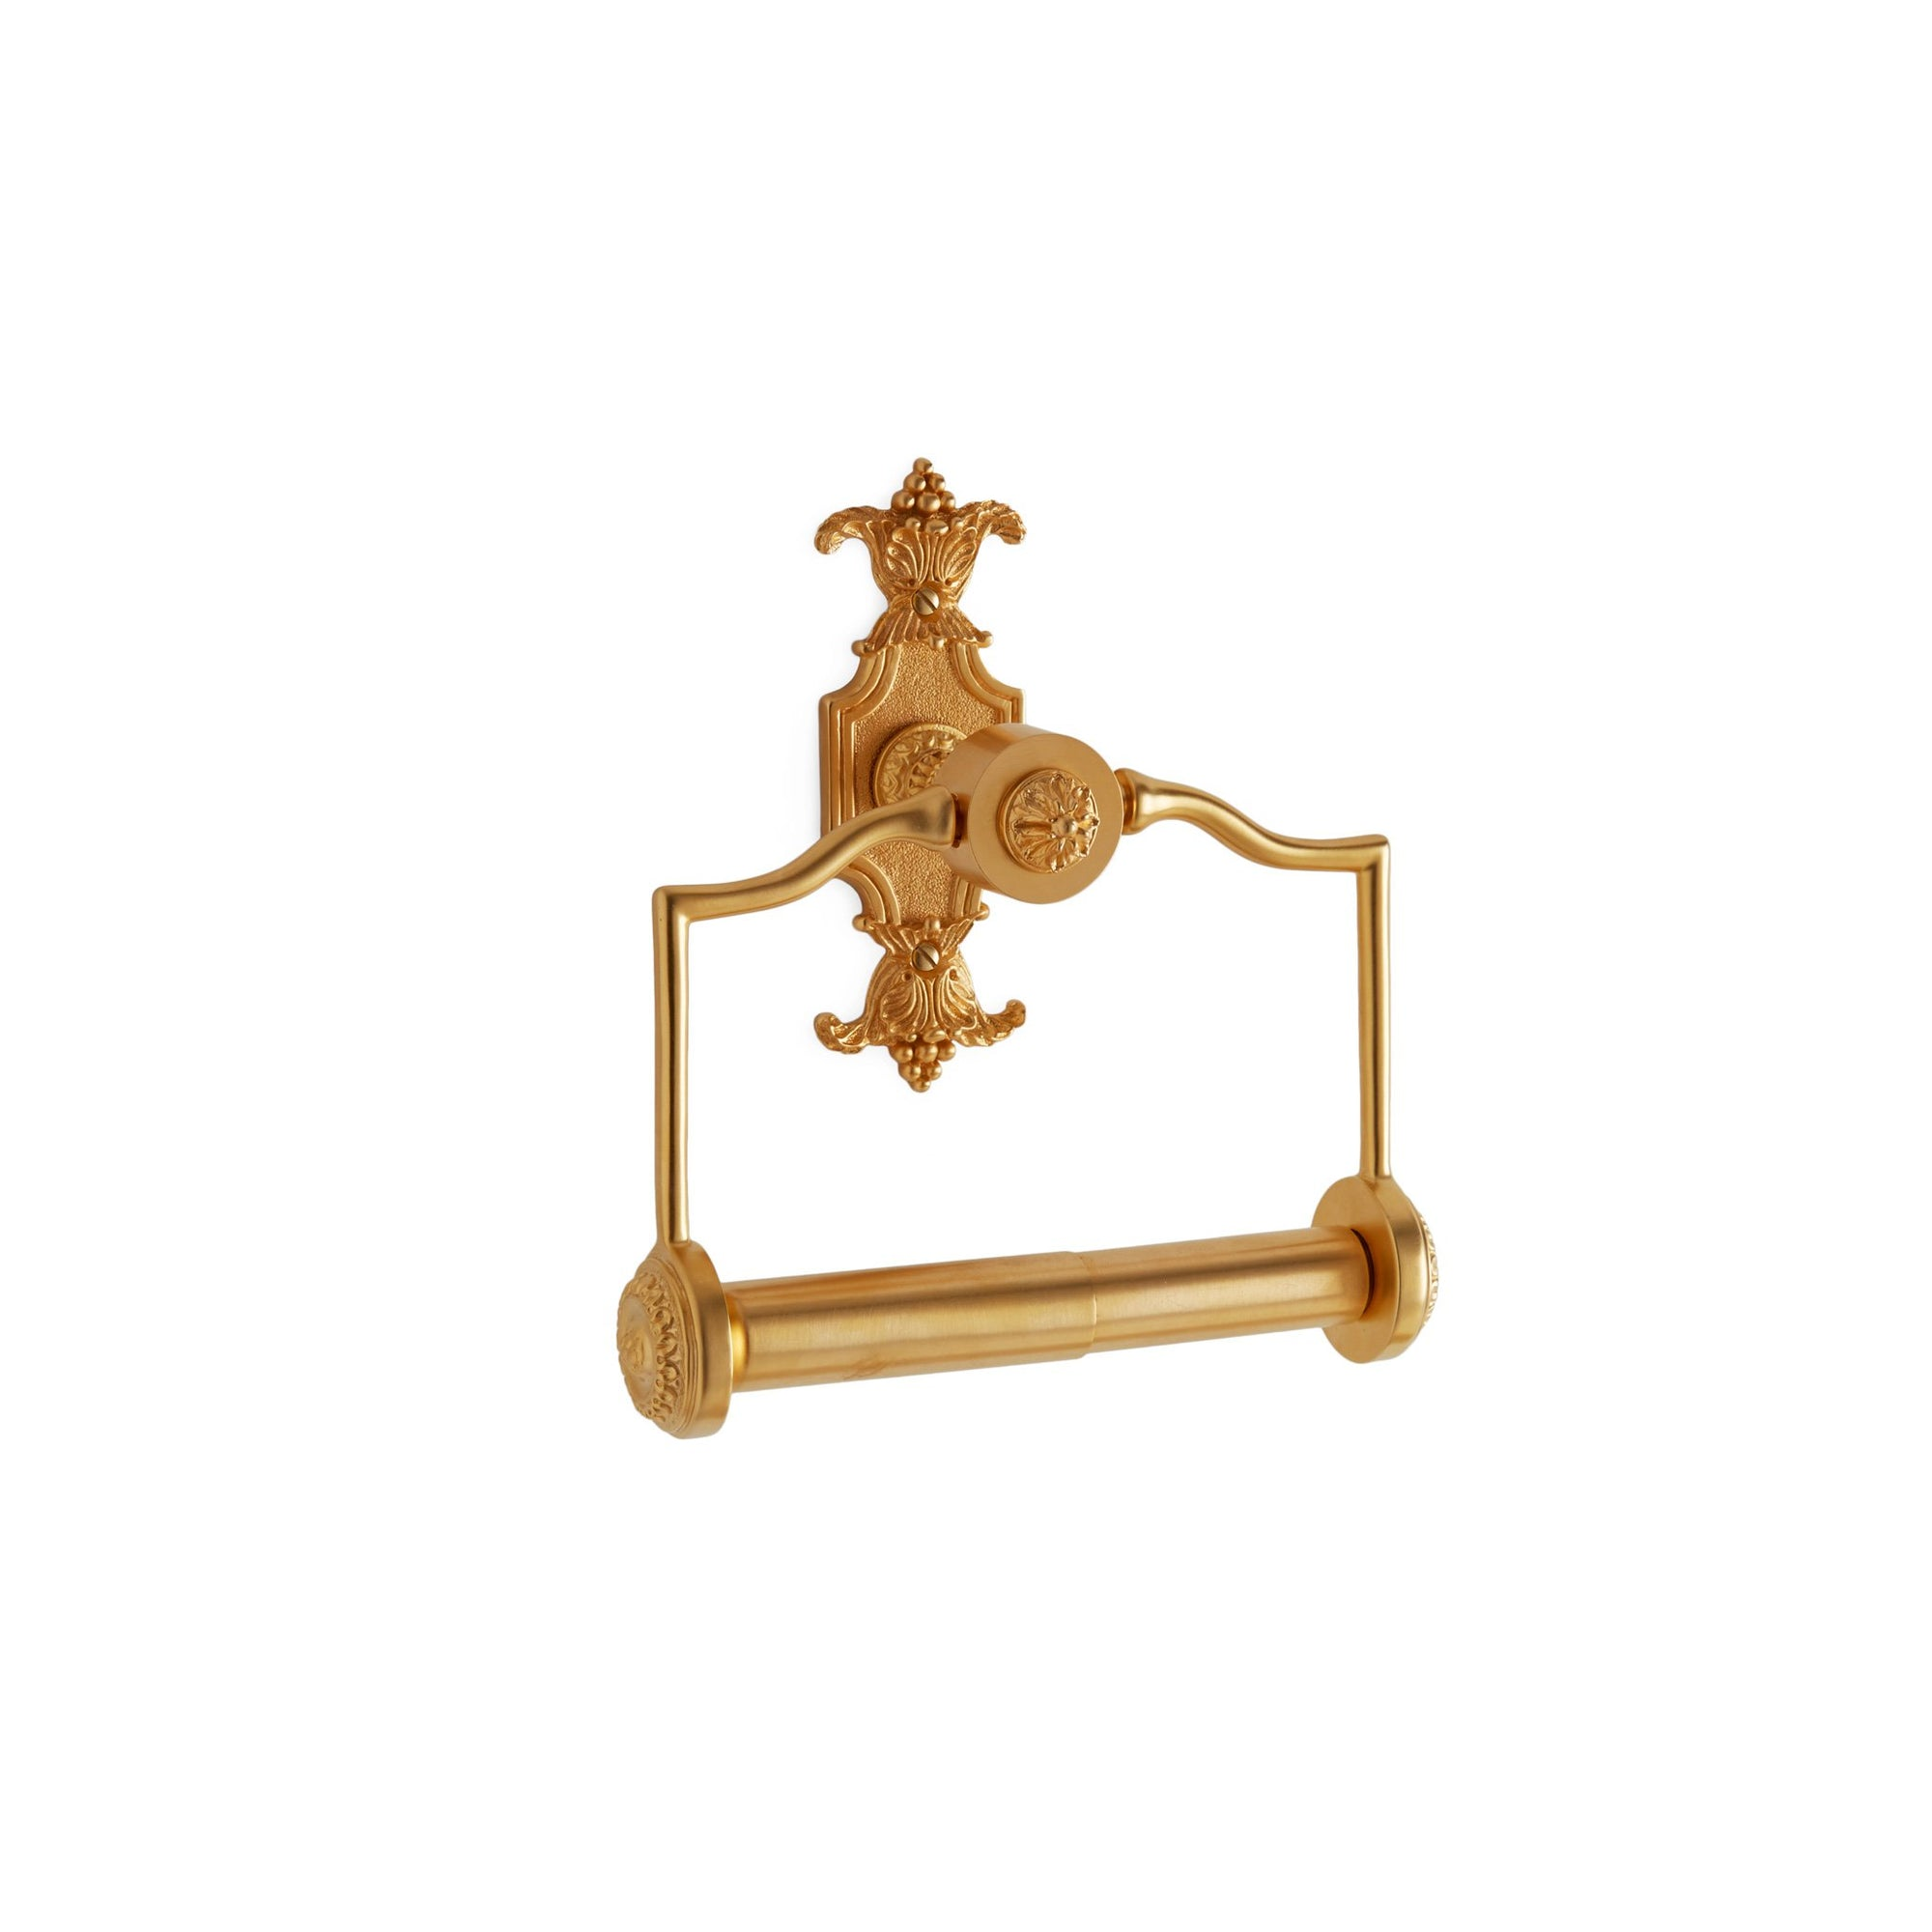 3533-GP Sherle Wagner International Louis XVI Paper Holder in Gold Plate metal finish